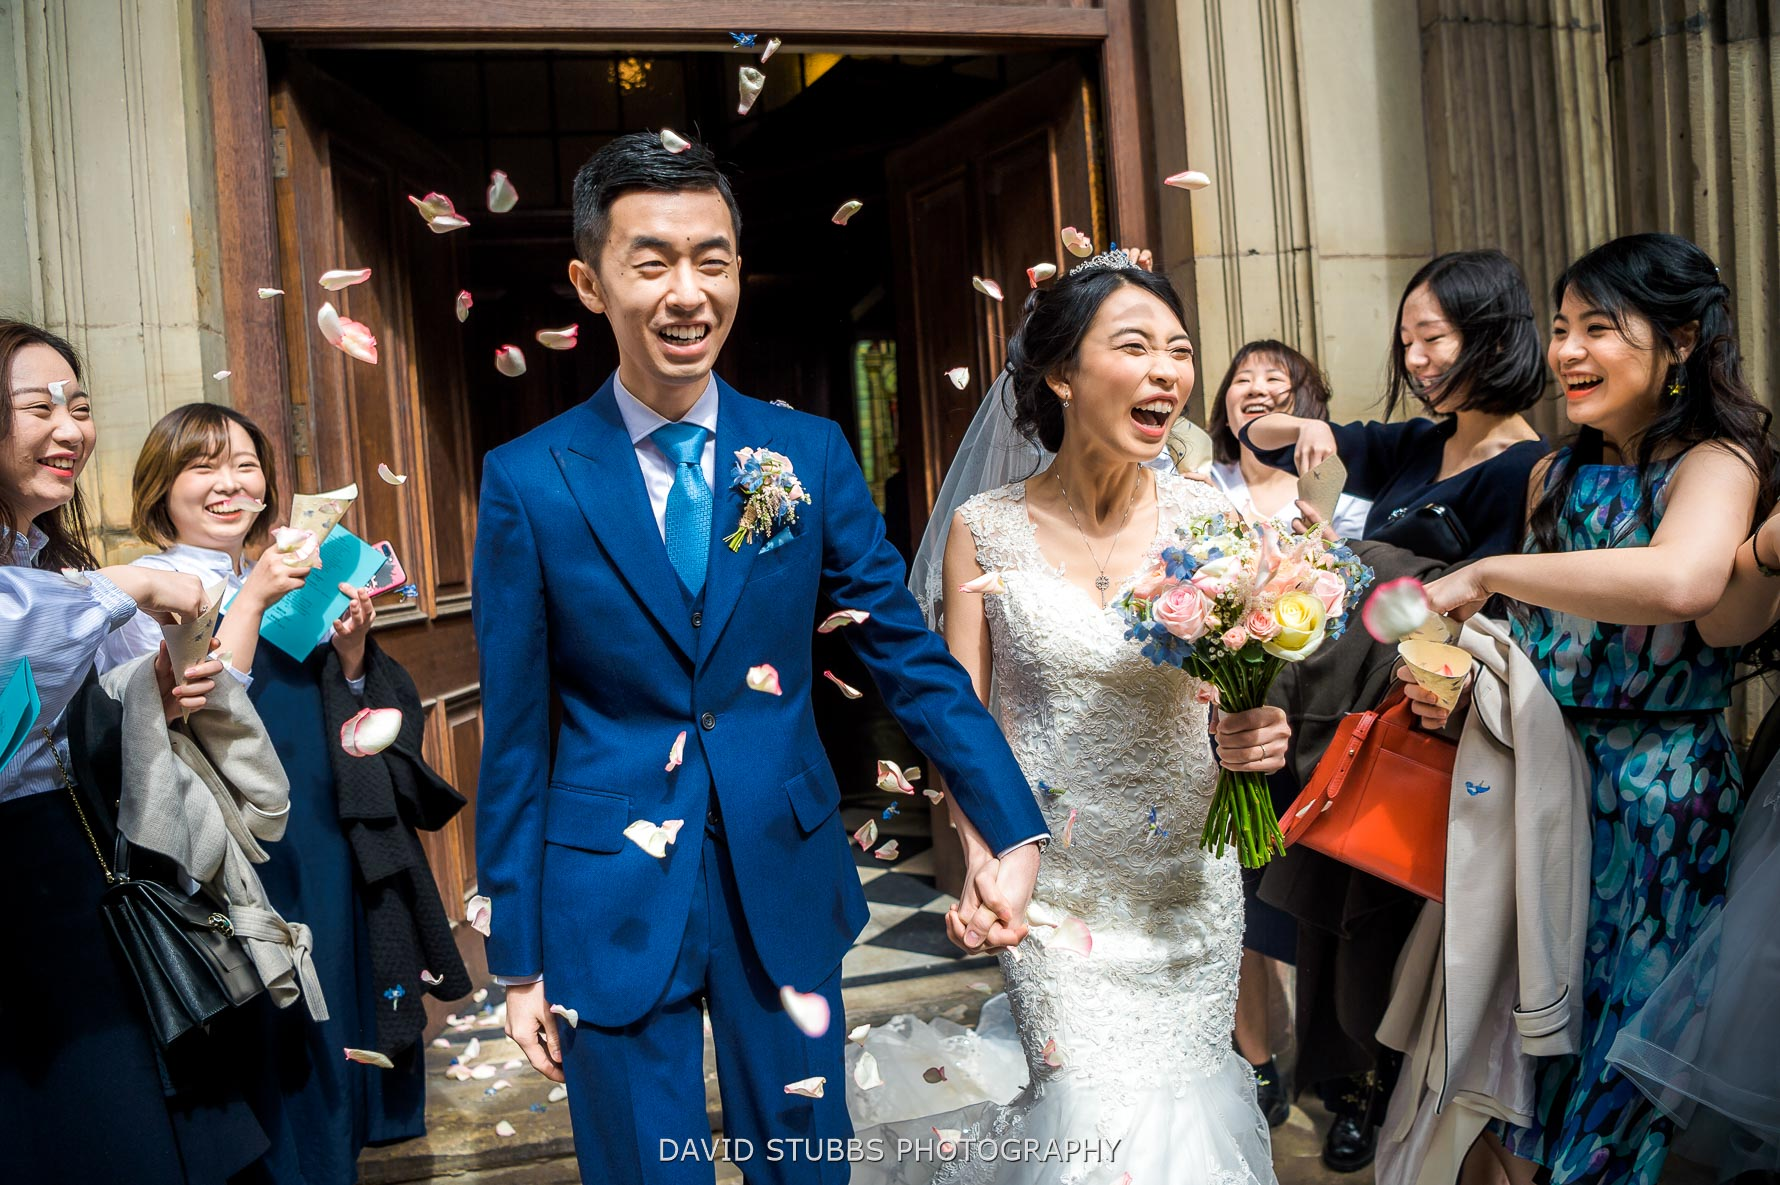 lots of confetti to celebrate their wedding